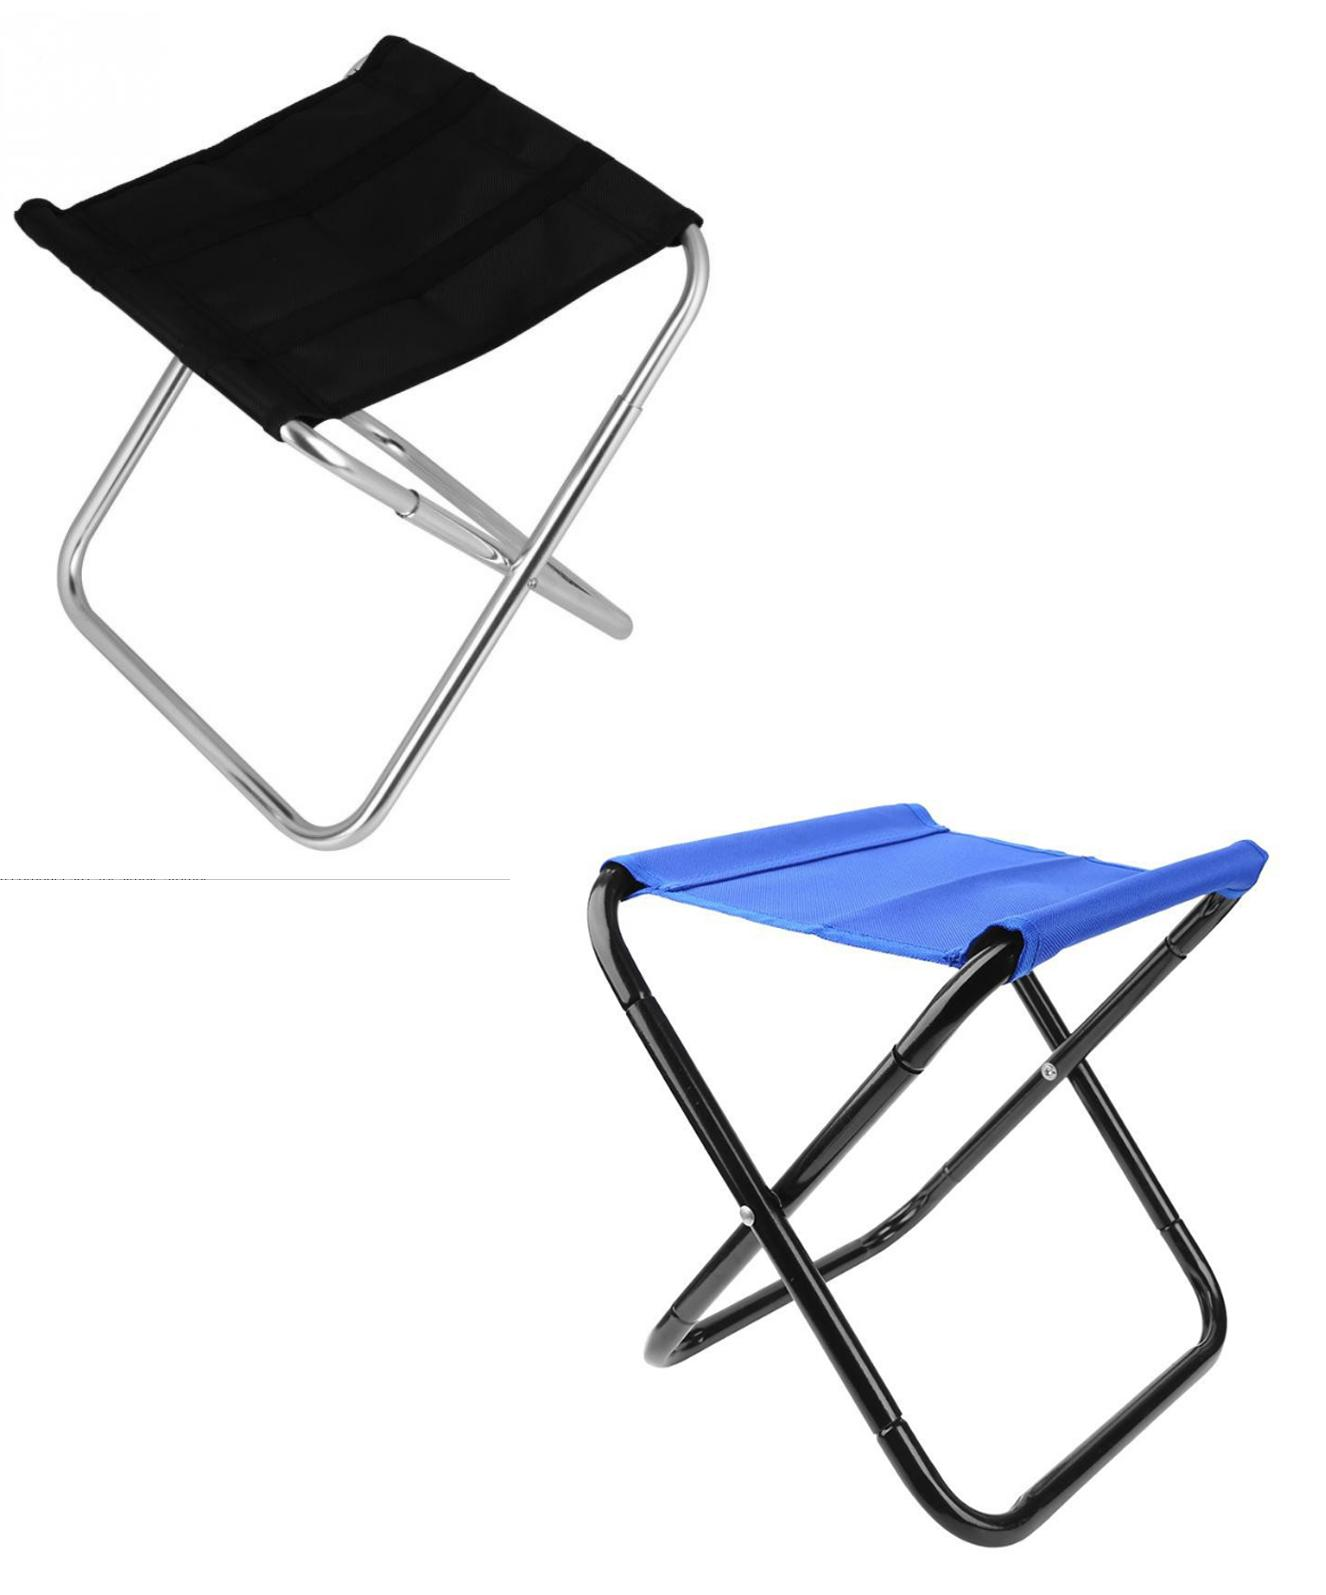 folding chair portable outdoor table and chairs wood camping for sale online brands set of two stool fishing